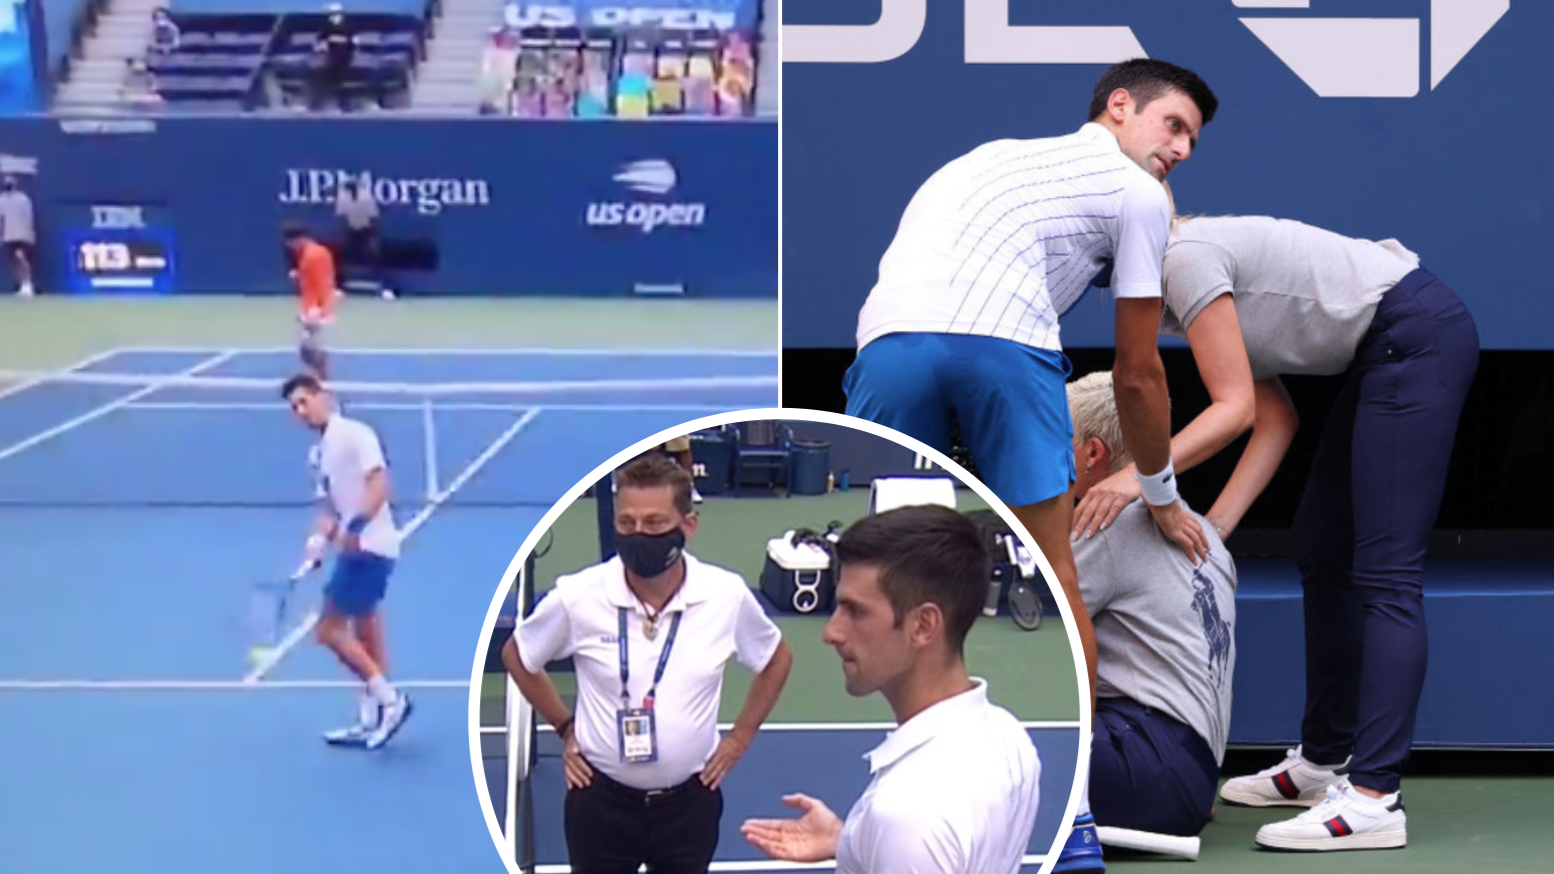 Novak Djokovic Booted From Us Open After Hitting Line Judge With A Ball Sportbible